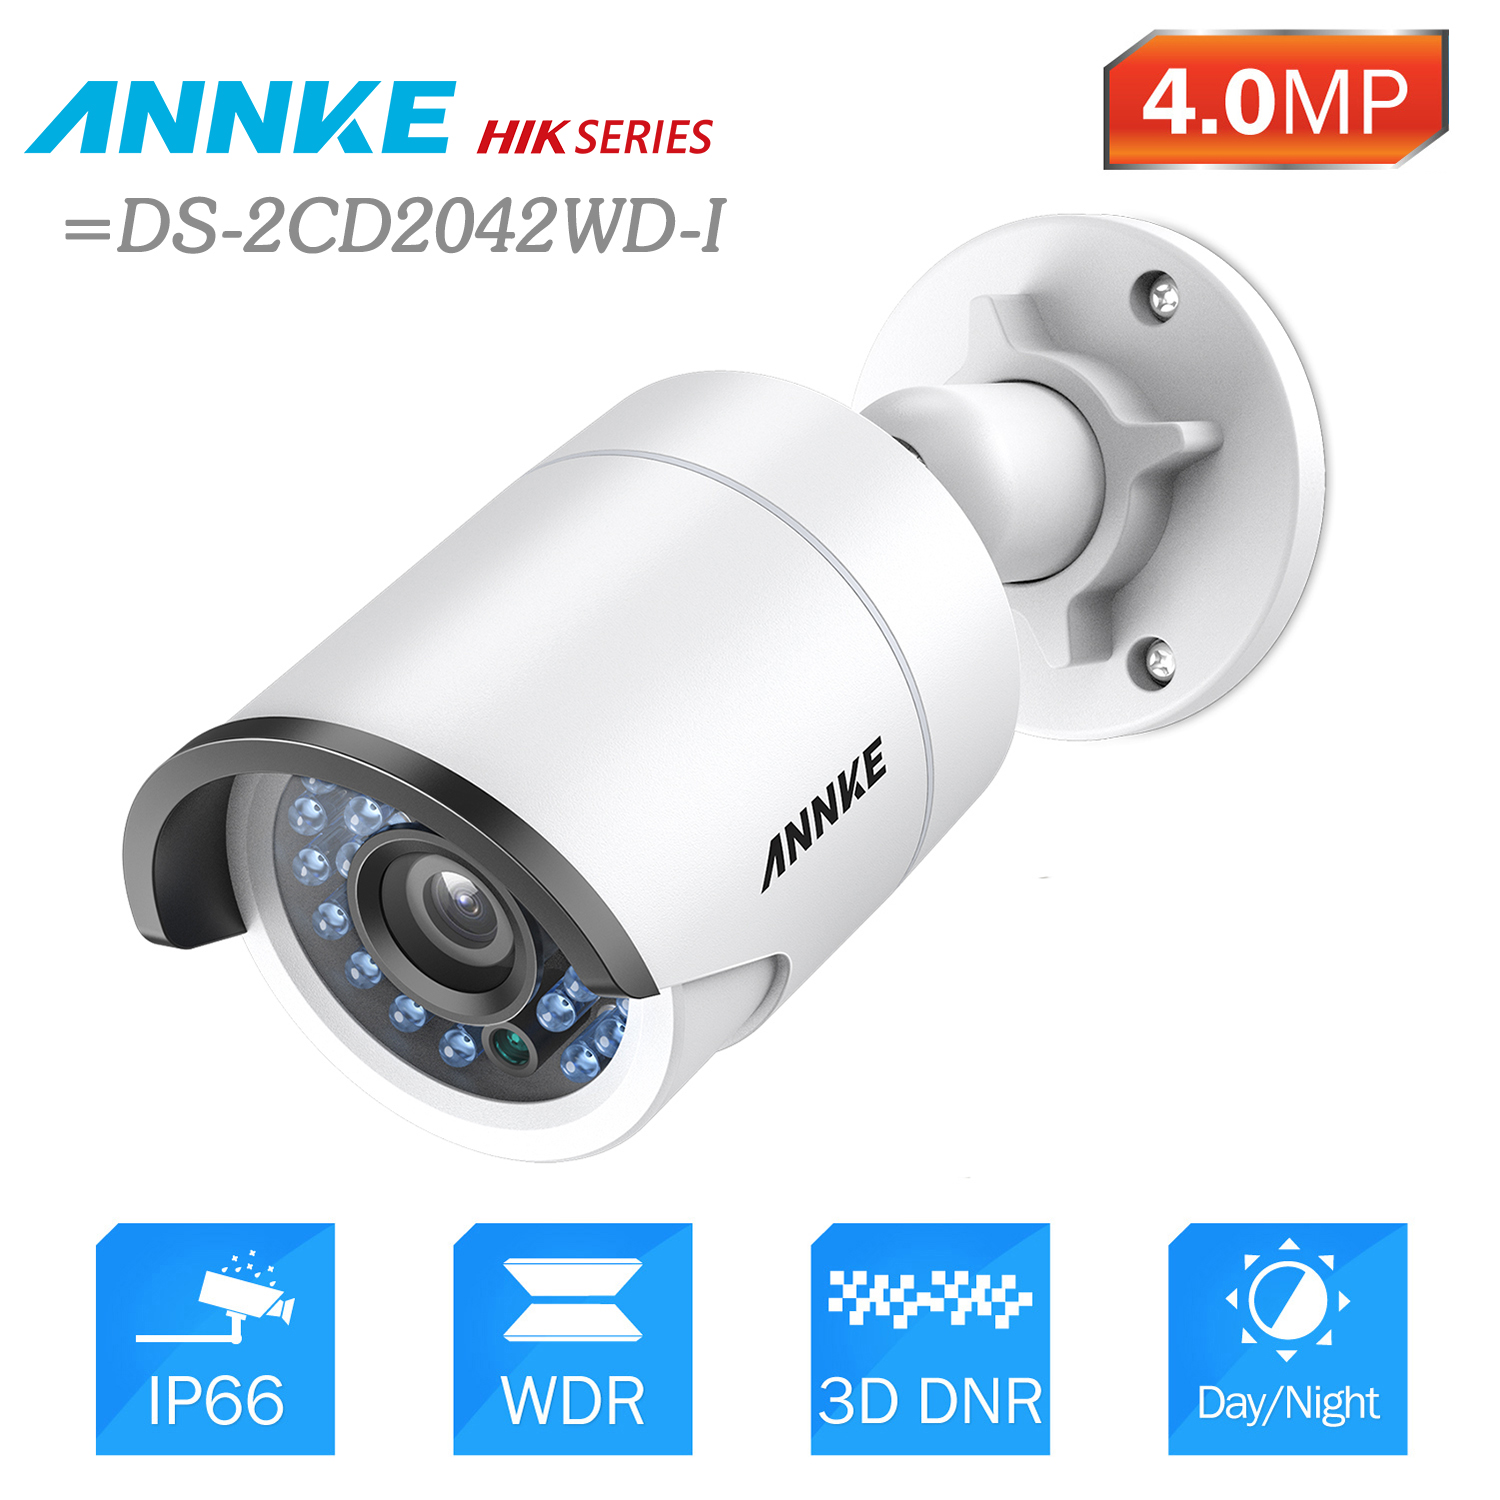 ANNKE 4.0 MP HD PoE Security Bullet IP Camera 30m Night Vision With IP66 Weatherproof Metal Case= HIK DS-2CD2042WD-I bullet camera tube camera headset holder with varied size in diameter